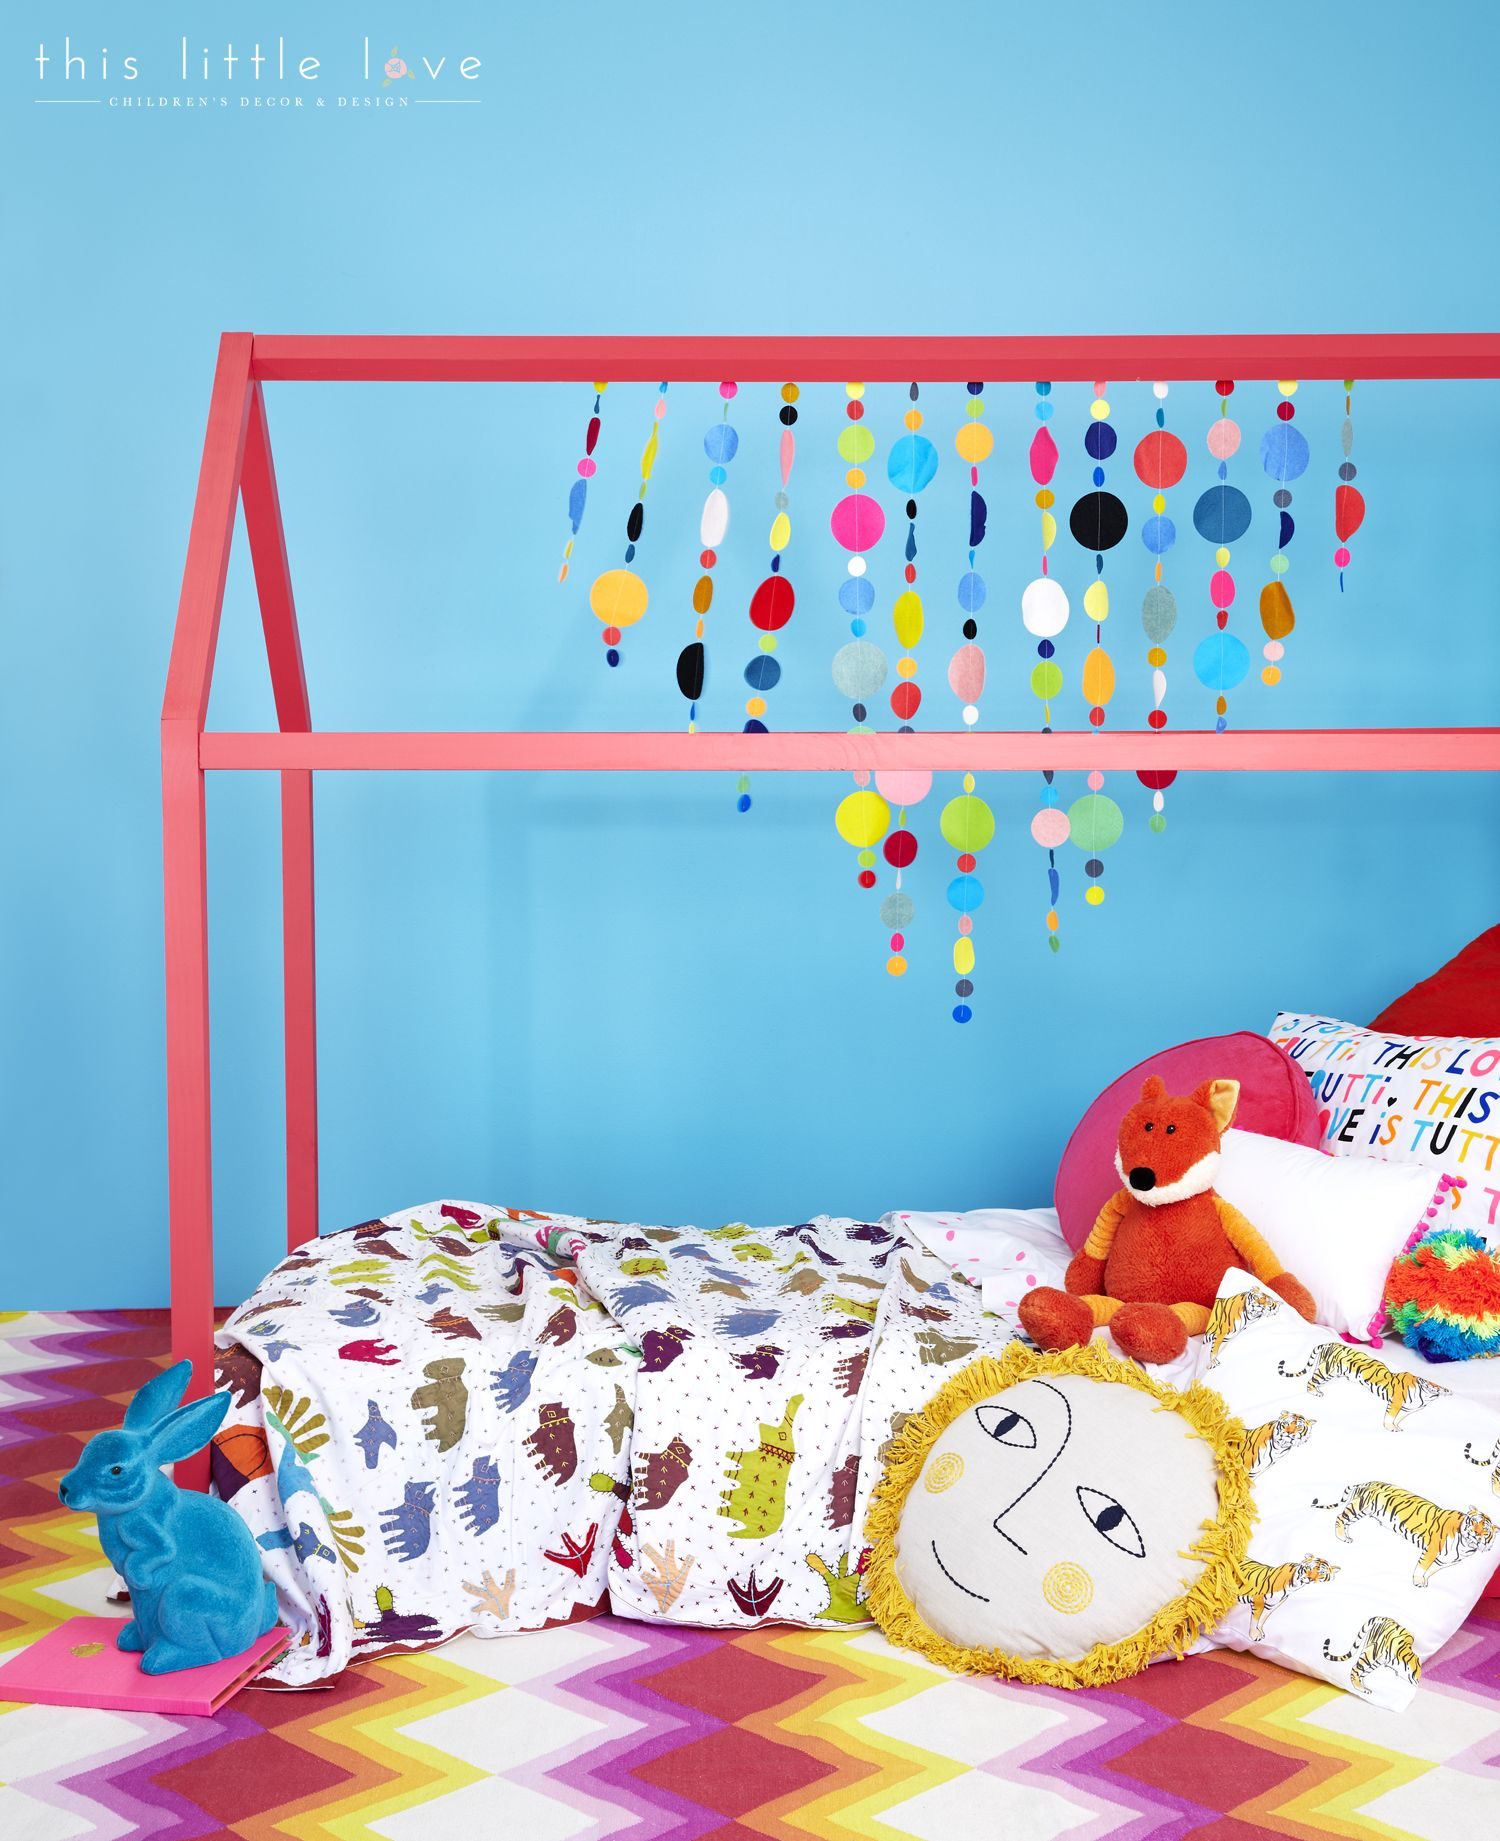 House Bed, Cubby House, House, Bed, Kids Bed, Playroom, Kids